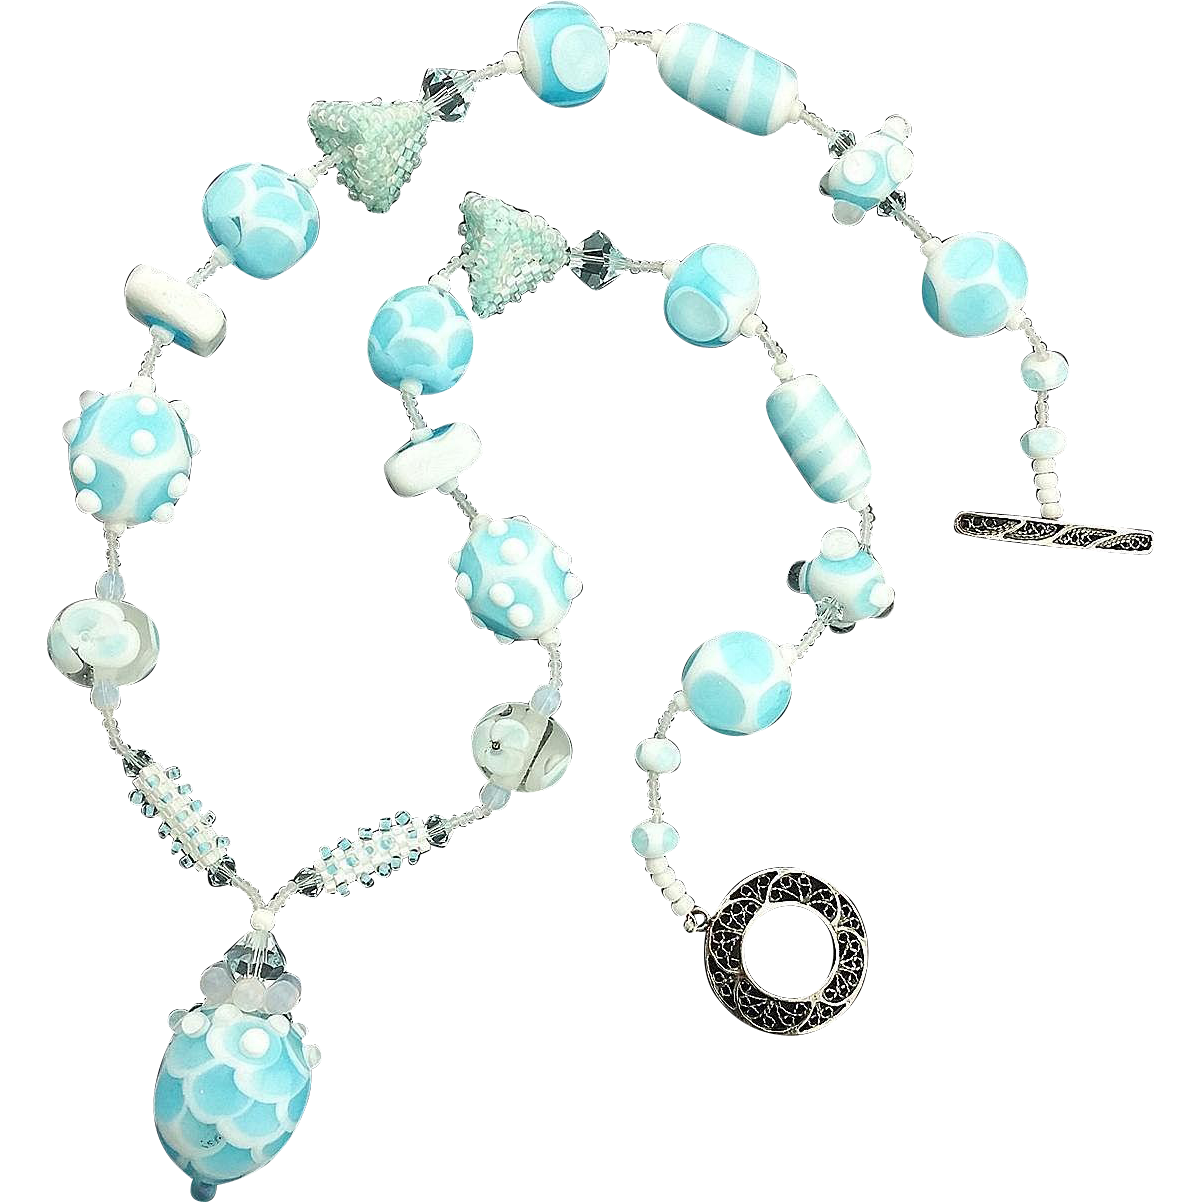 Dreamy Sky Blue Opalescent Necklace, Lampwork Beads, Artisan Crafted at Sweetpea Cottage